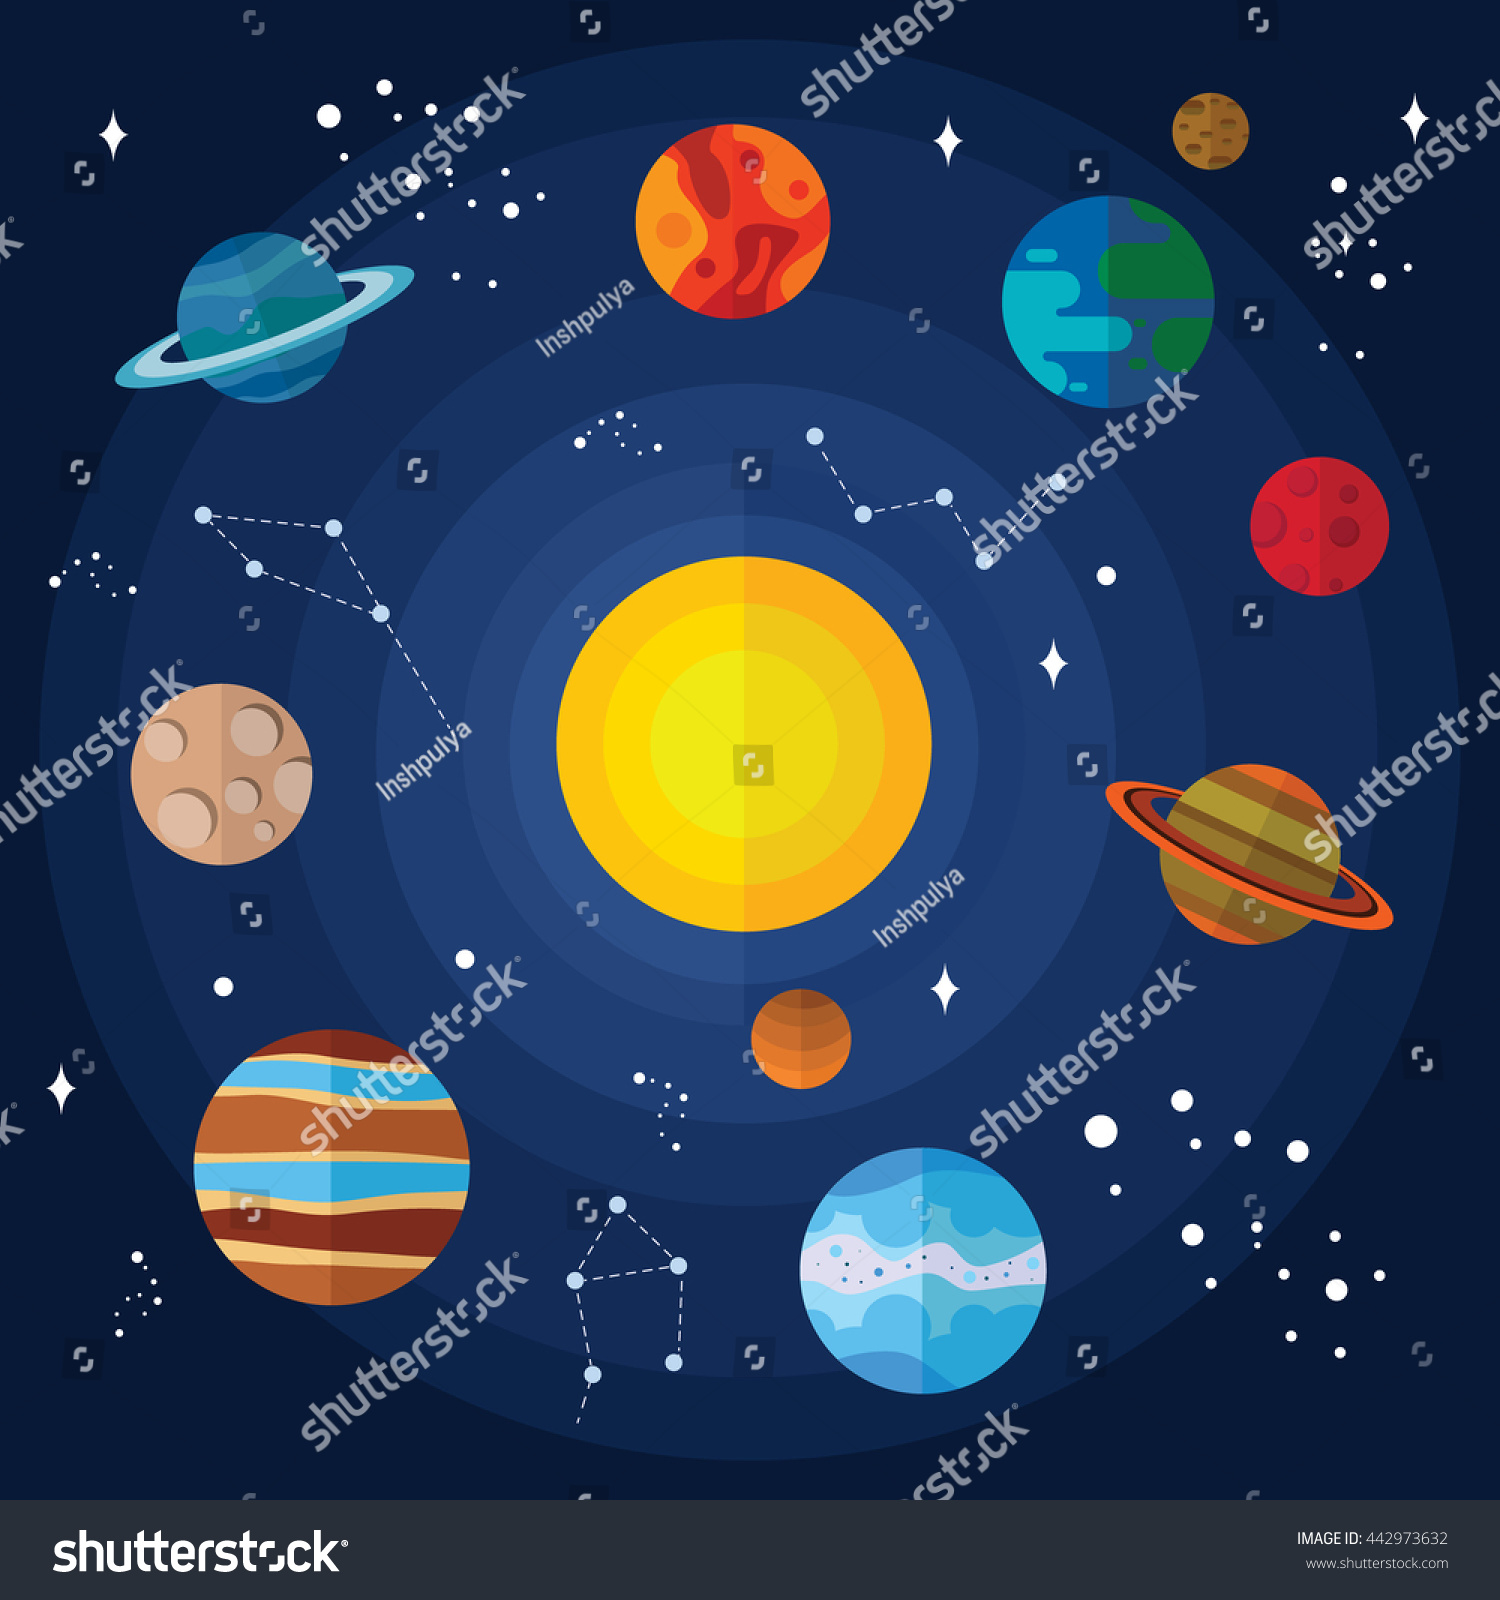 Collection Of Vector Images Of Planets In The Solar System With